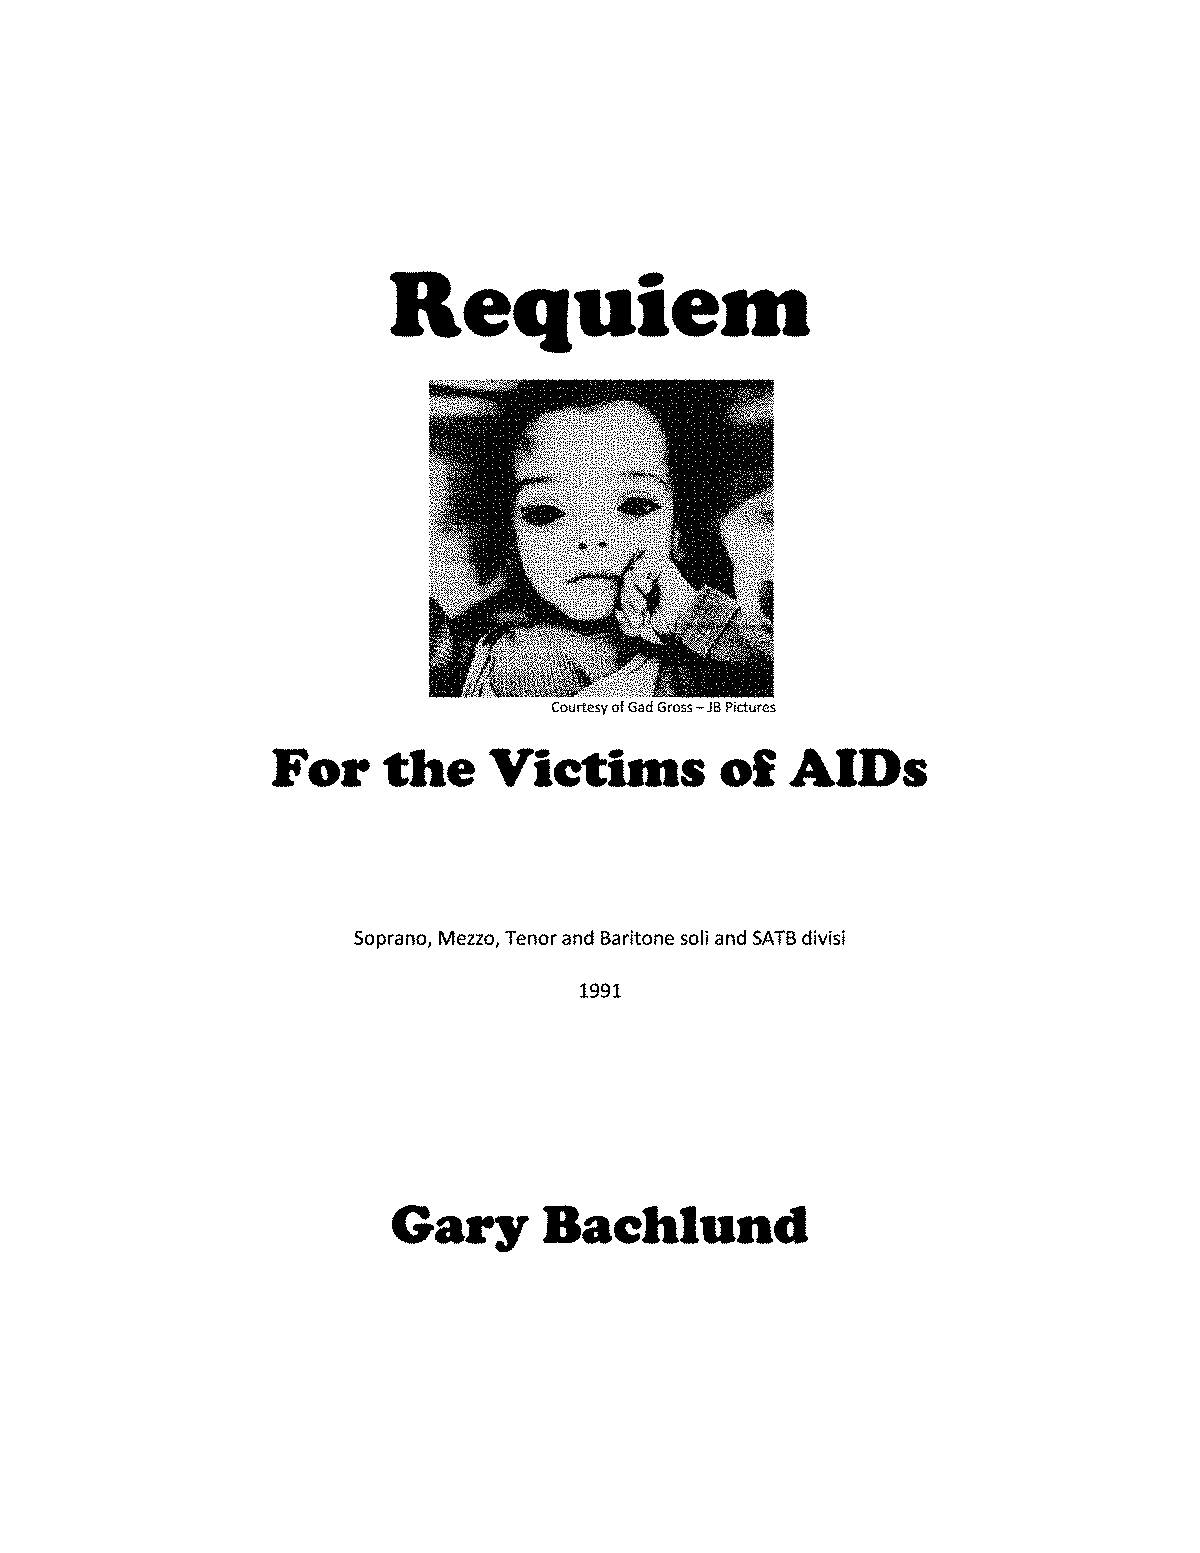 PMLP522060-Requiem for the Victims of AIDS 1991.pdf